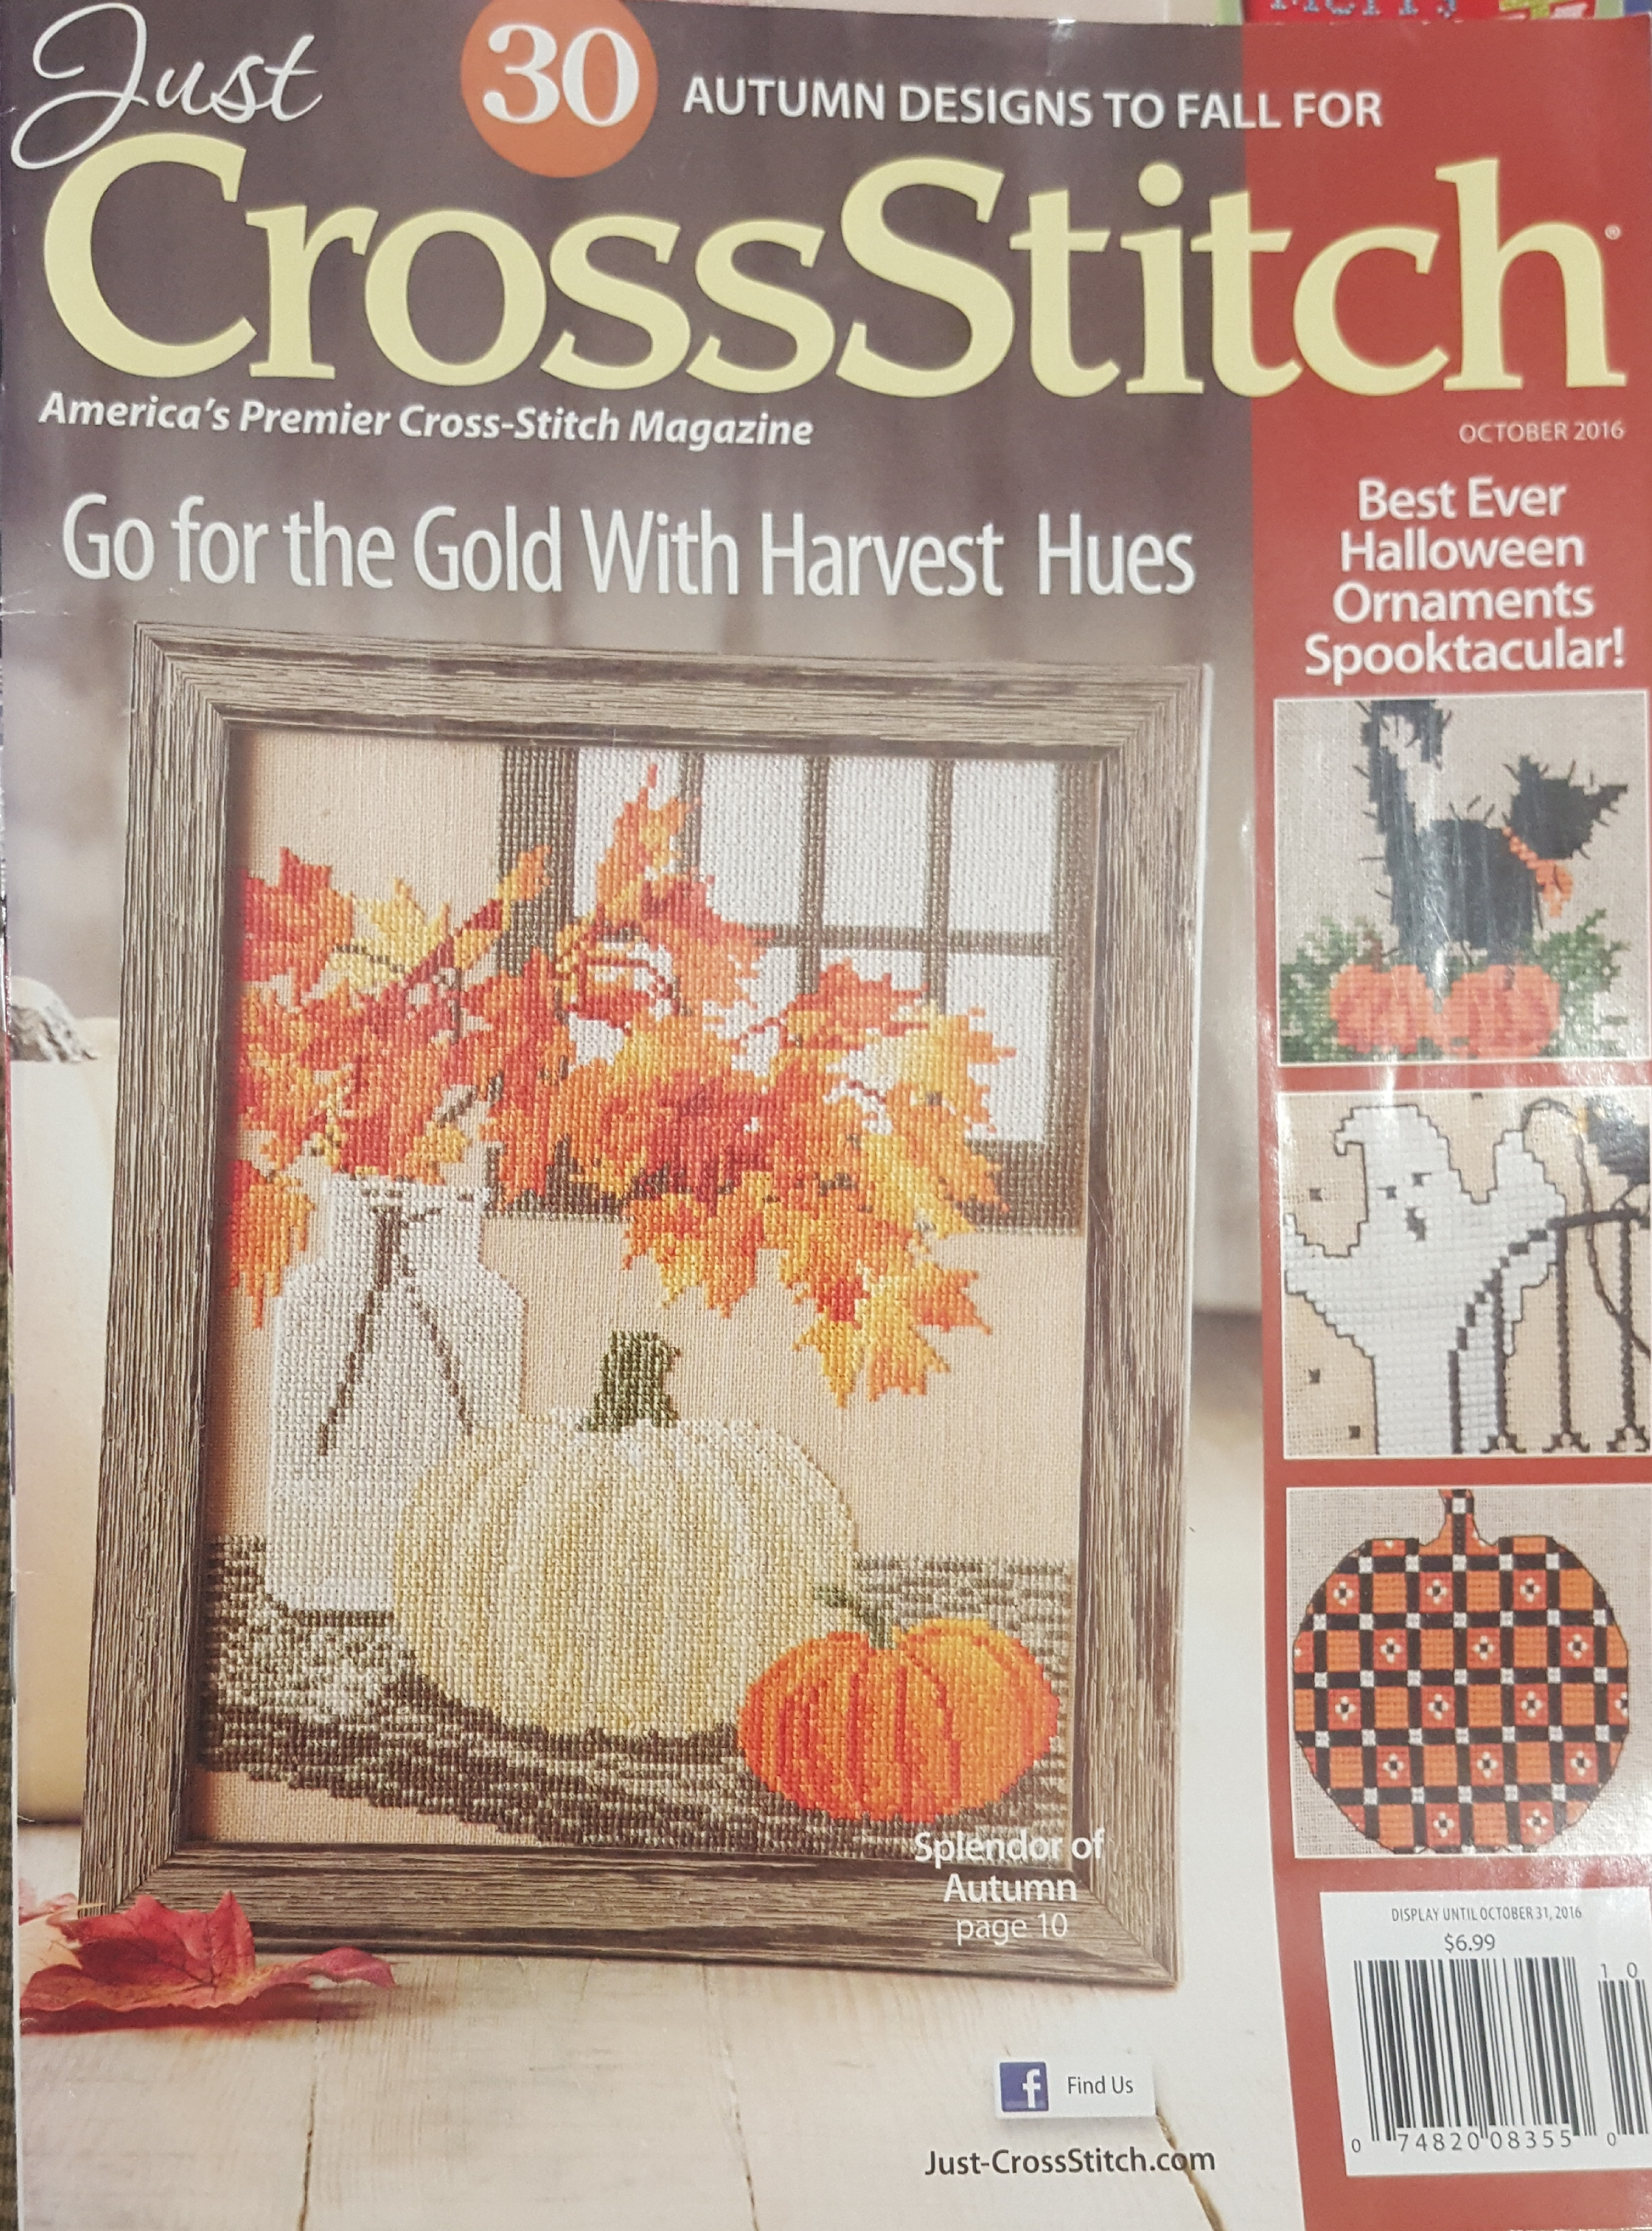 Magazines - Cross Stitch Haven